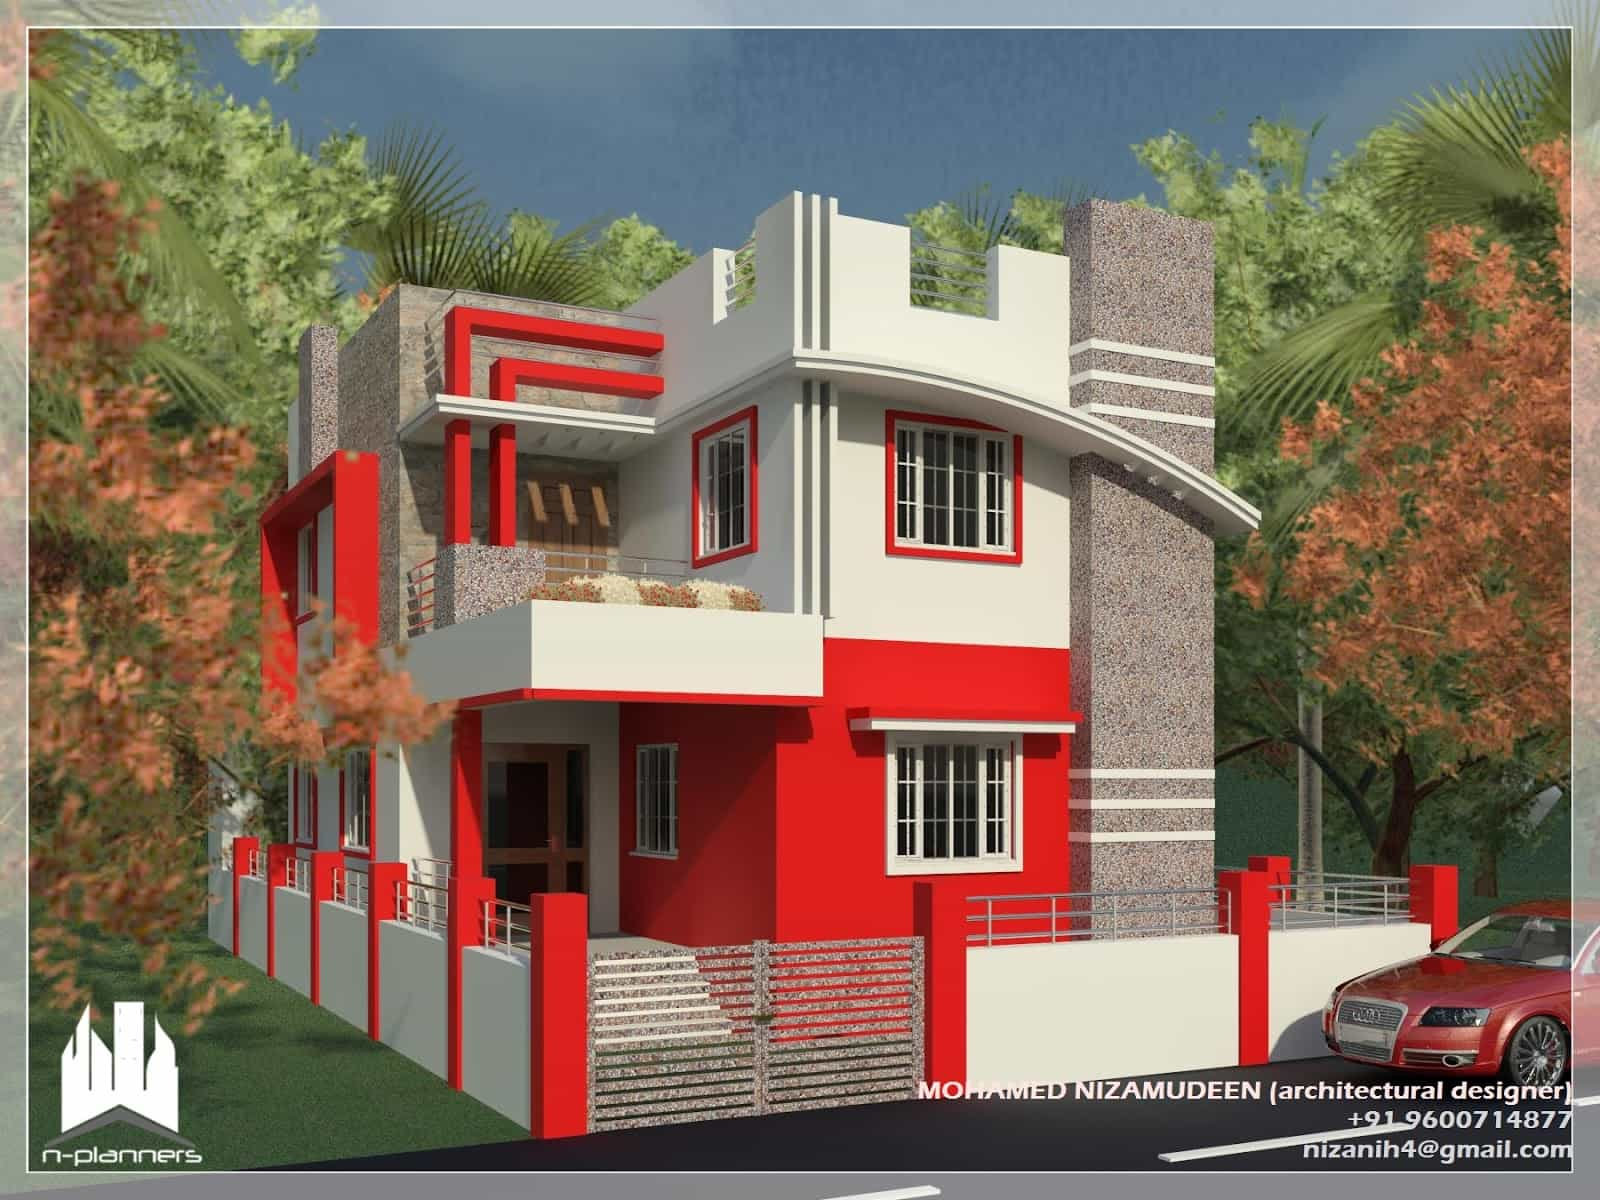 Below 1500 keralahouseplanner for Home outer colour design